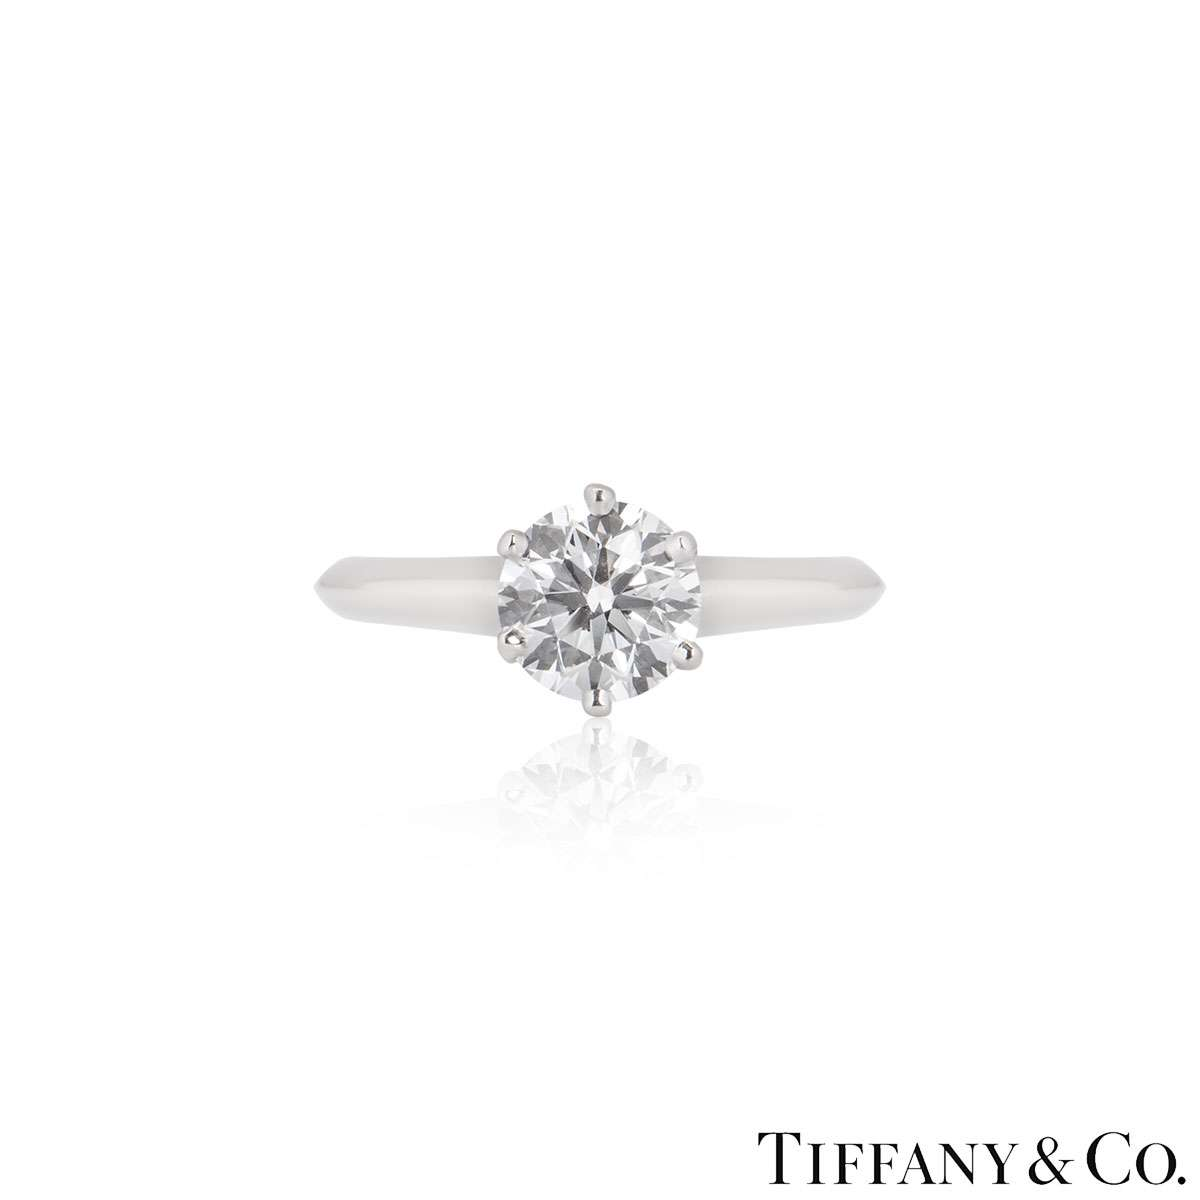 Tiffany & Co. Round Brilliant Cut Diamond Ring 1.01ct E/VS1